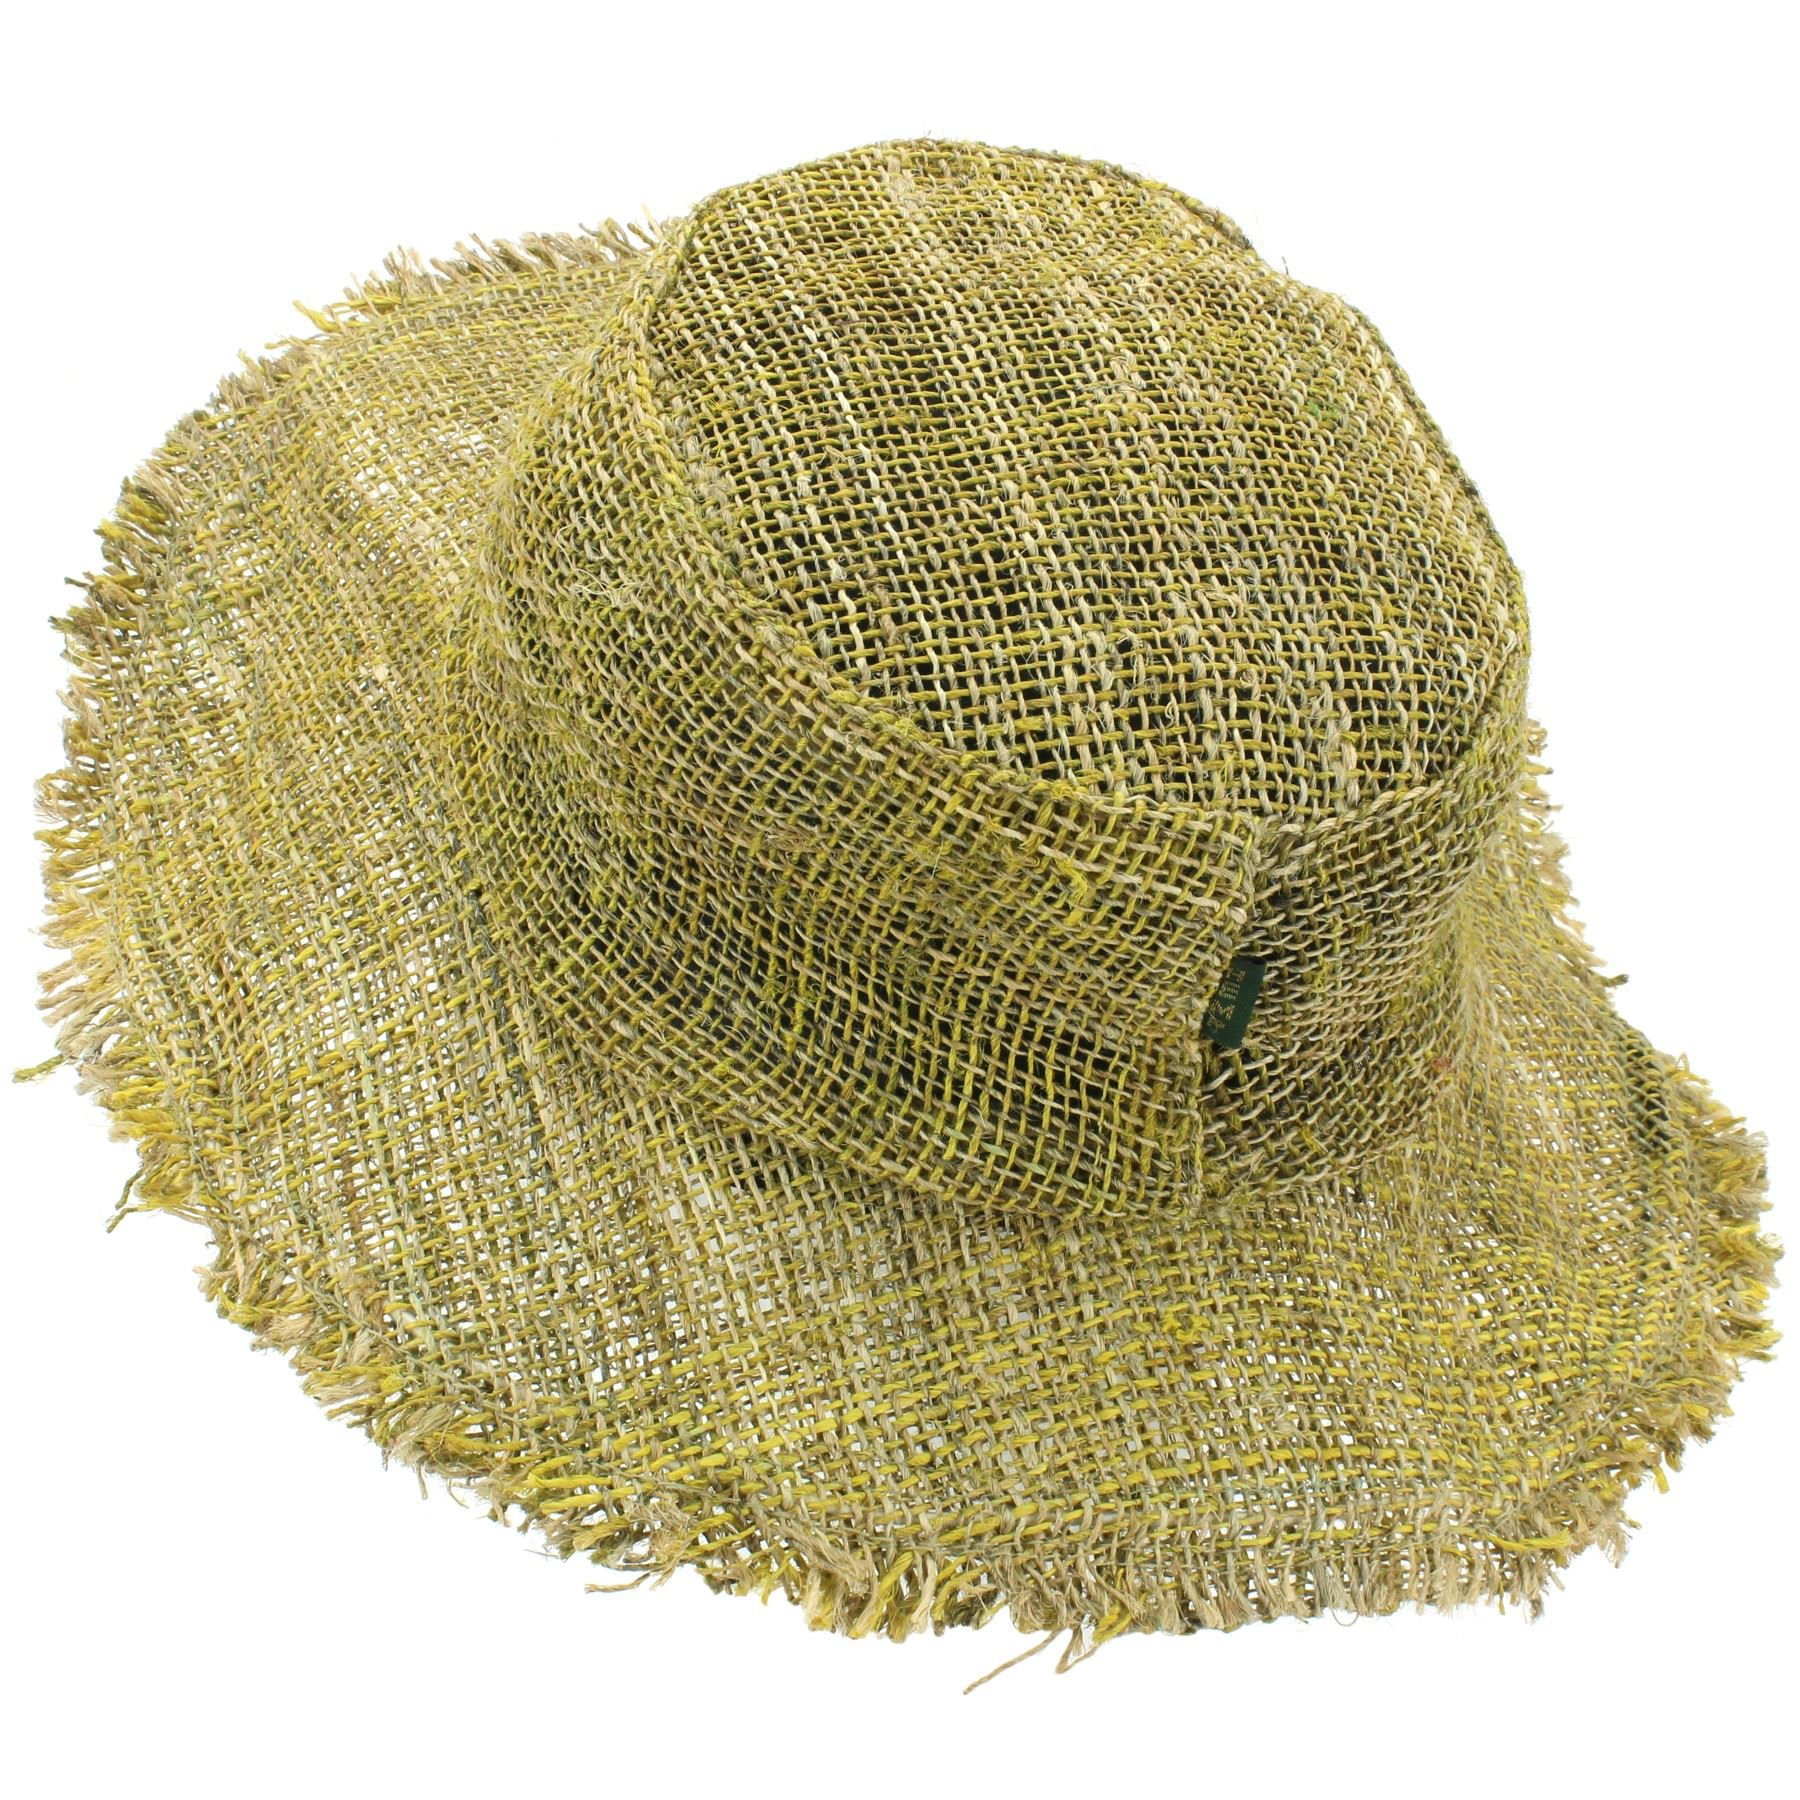 e6686a1e0cb Sun Hat Hemp Summer LoudElephant Frayed Brim Beach Cap Boho Hippie ...